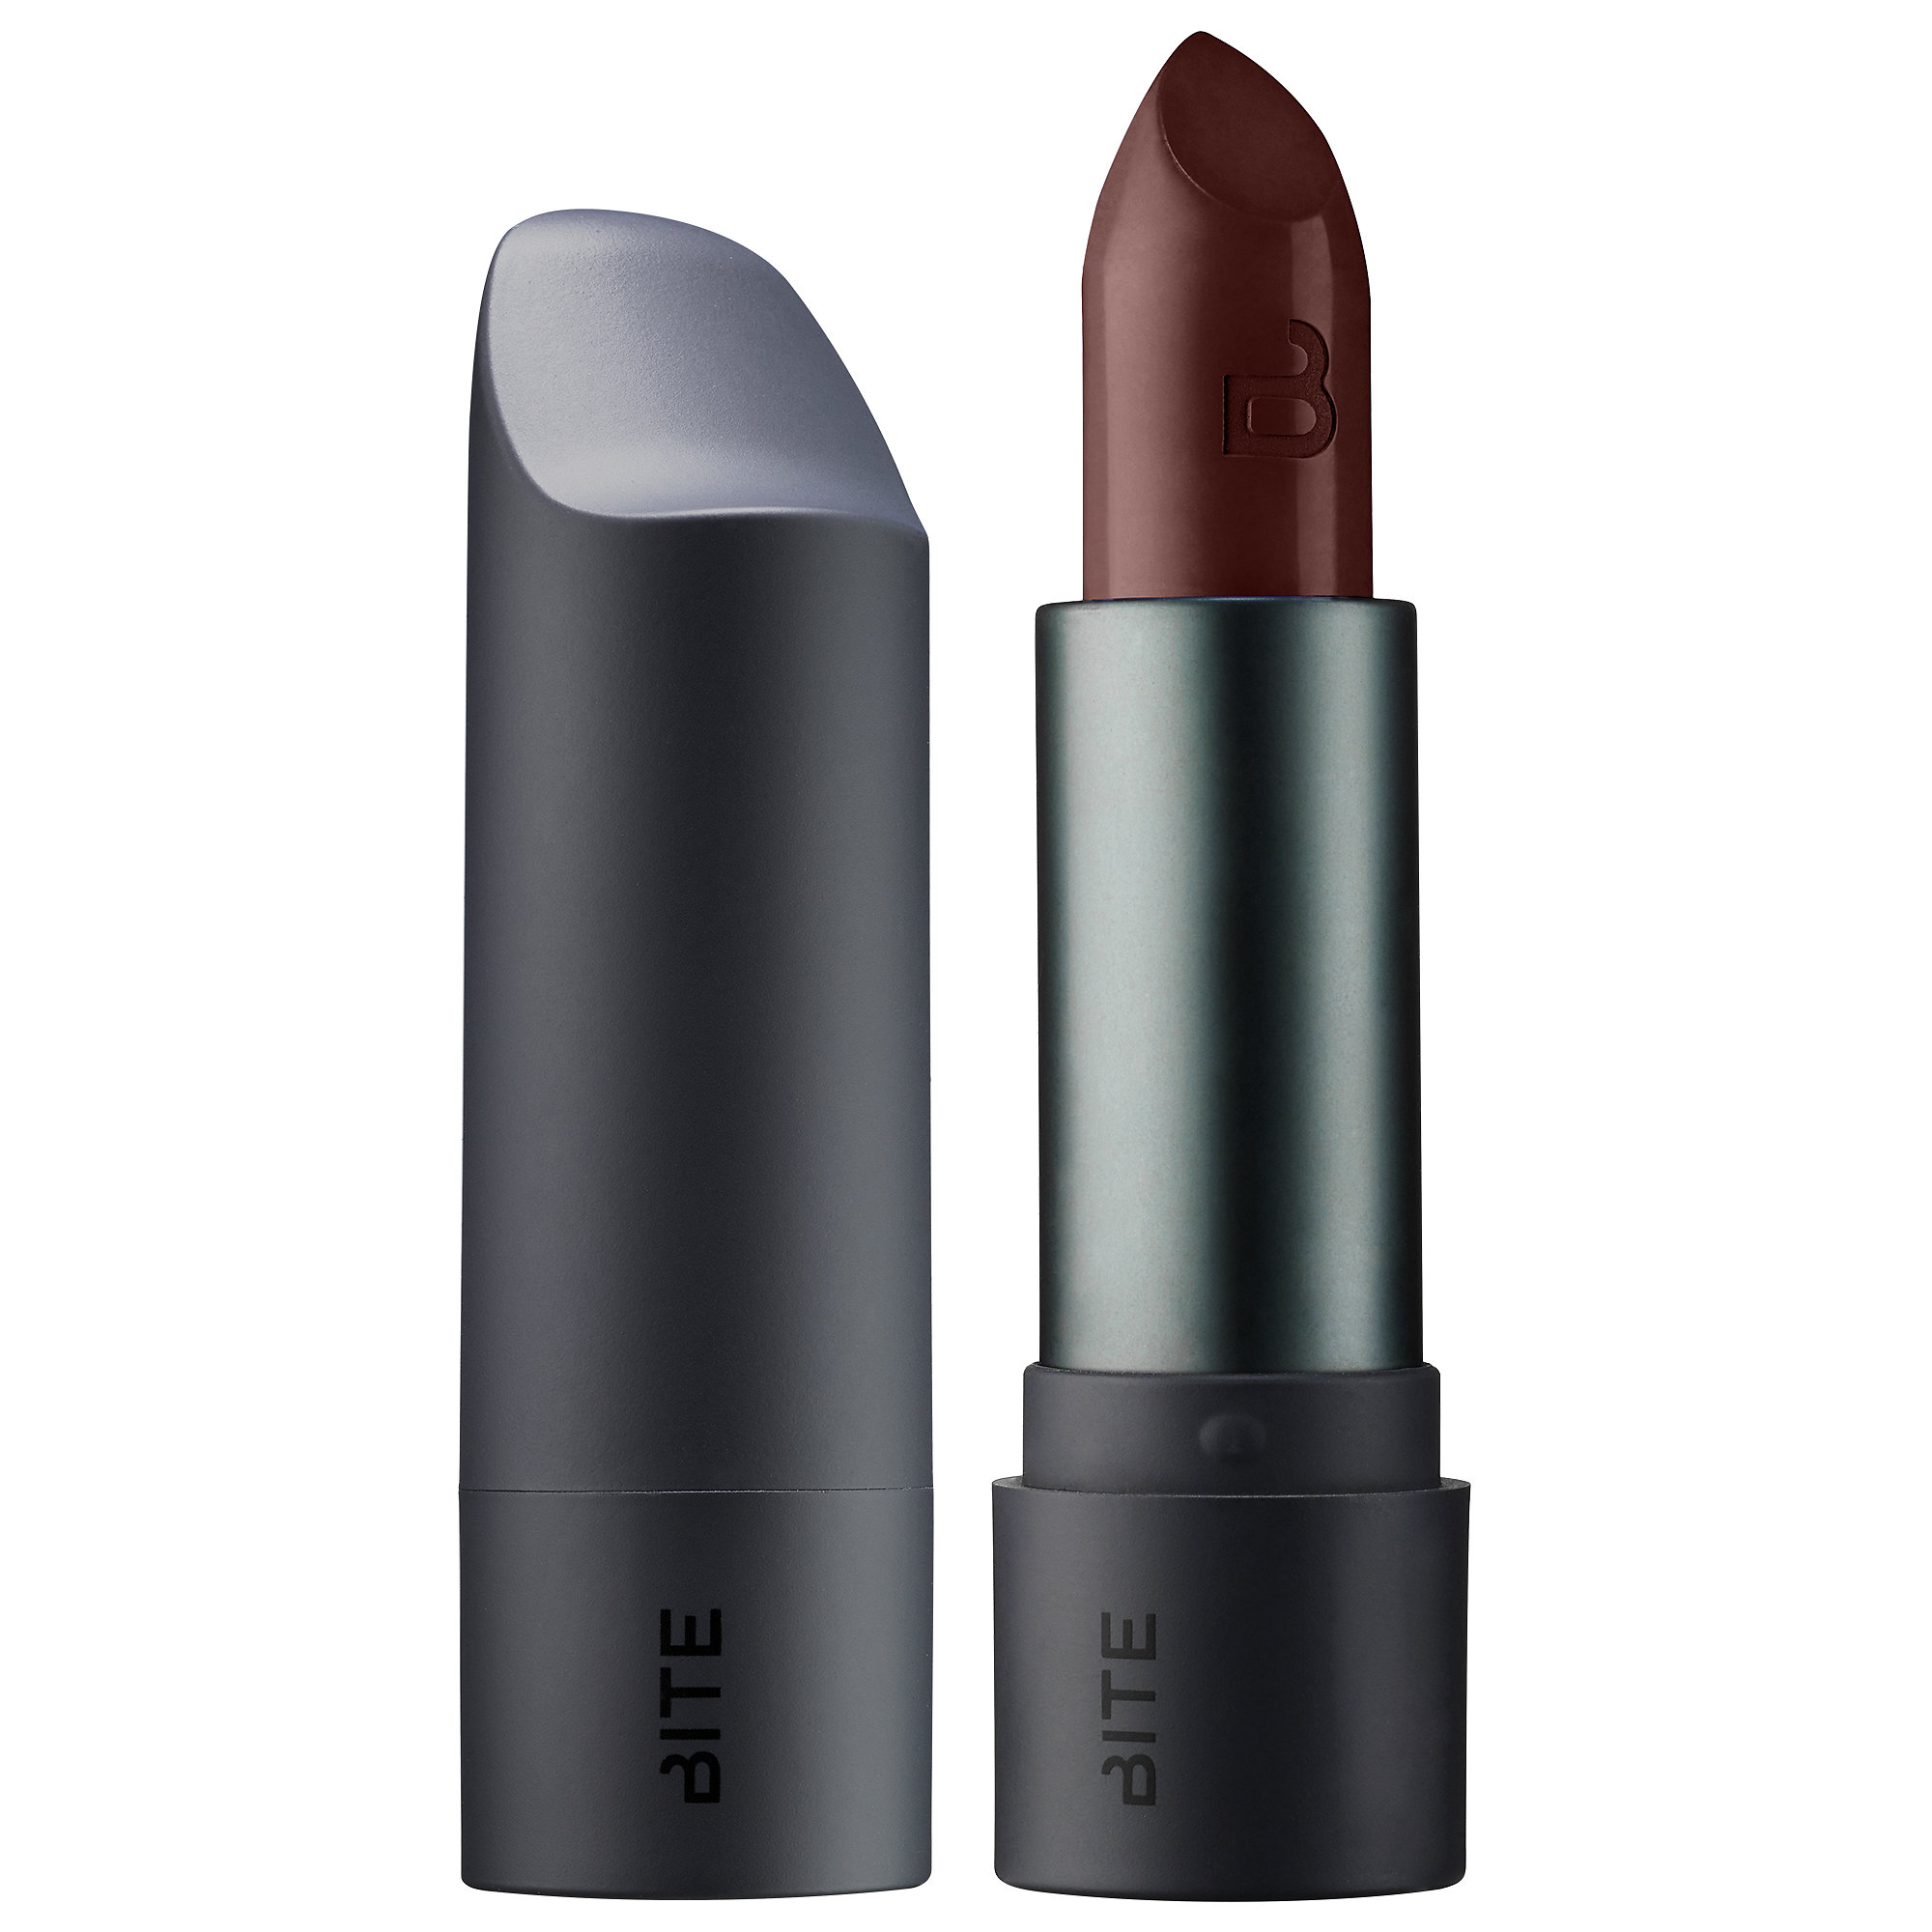 Bite Beauty Amuse Bouche whiskey lipstick